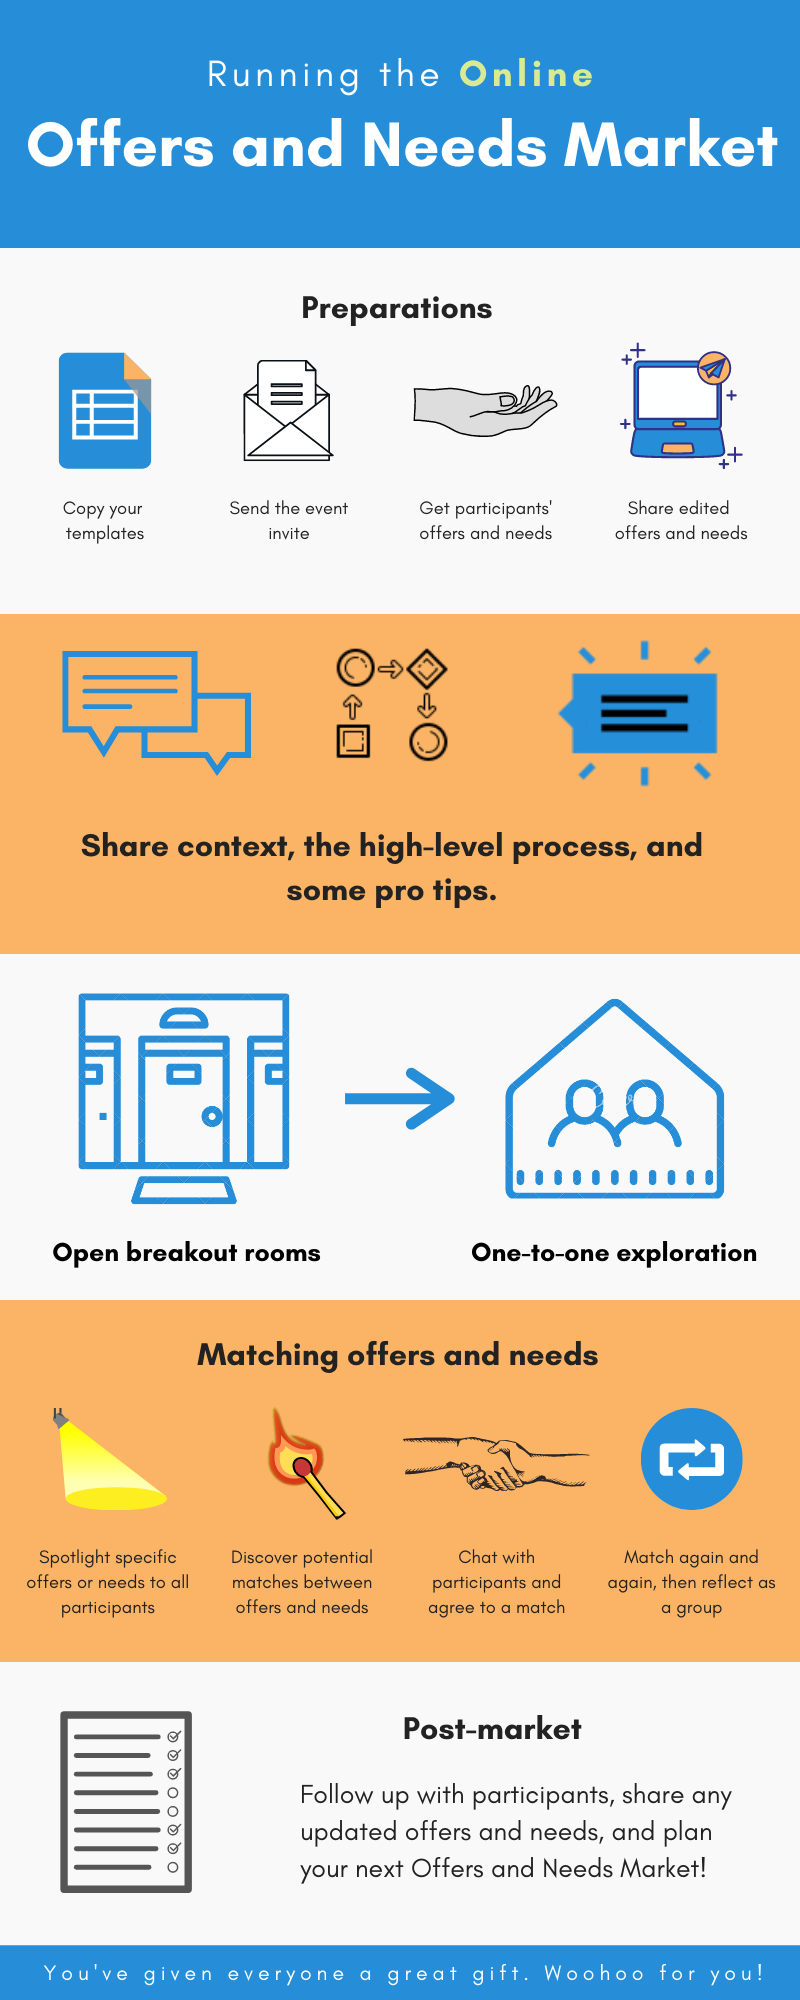 Offers and Needs Market Process Infographic (Online)